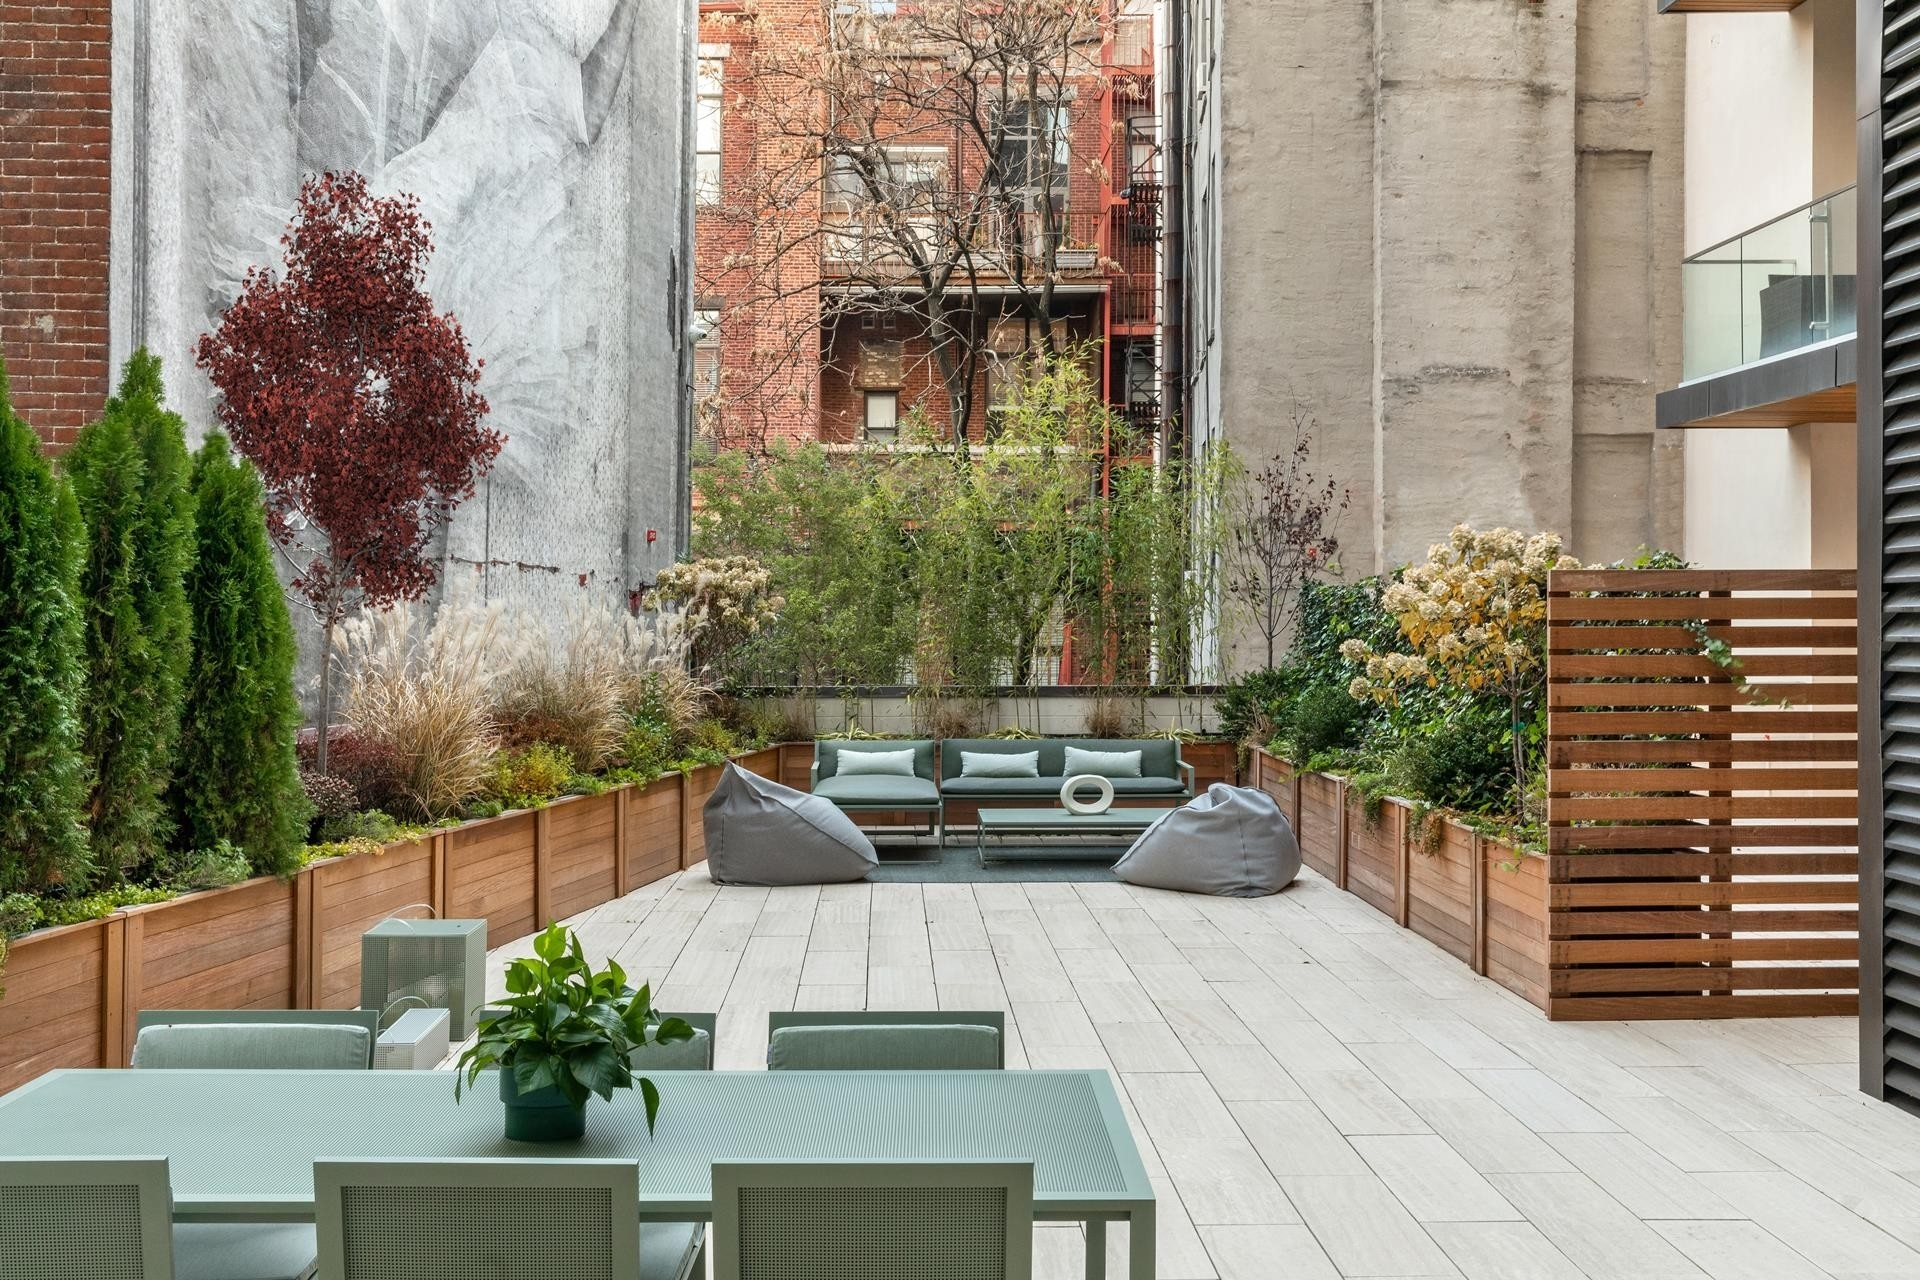 22. Condominiums for Sale at 32 E 1ST ST , PHBC East Village, New York, NY 10003